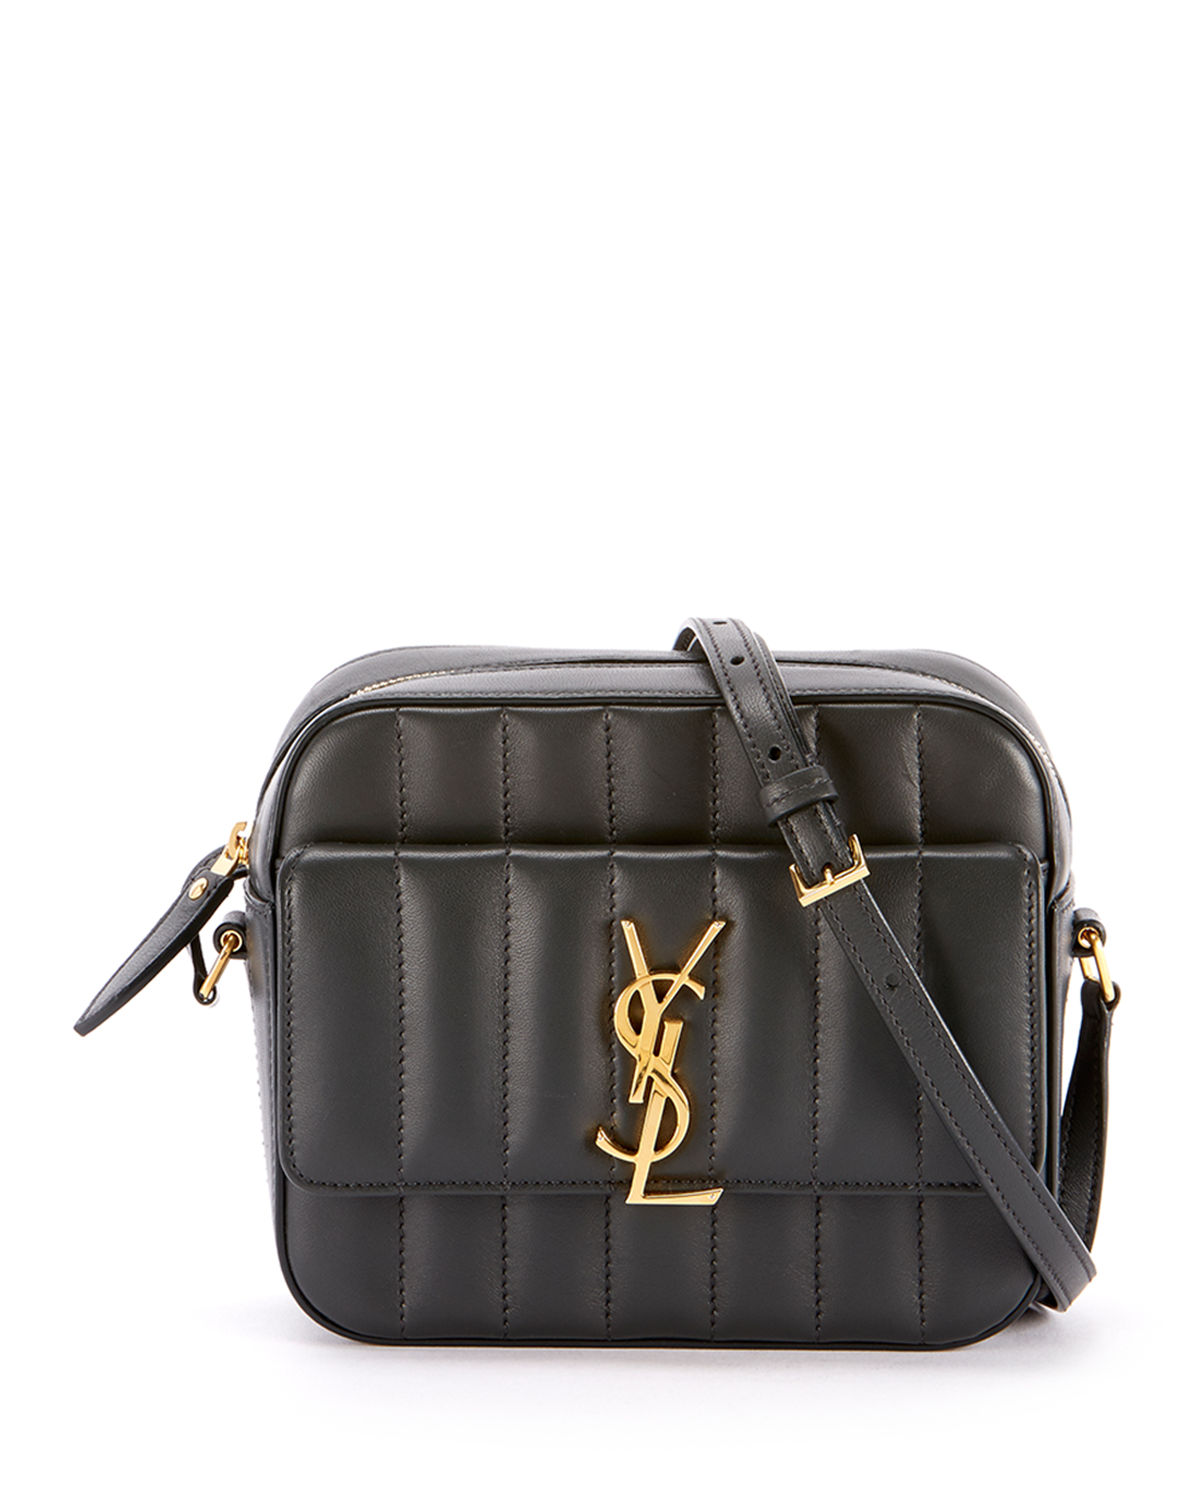 cc2c5fd86 Saint Laurent Vicky Medium YSL Monogram Quilted Camera Bag | Neiman ...